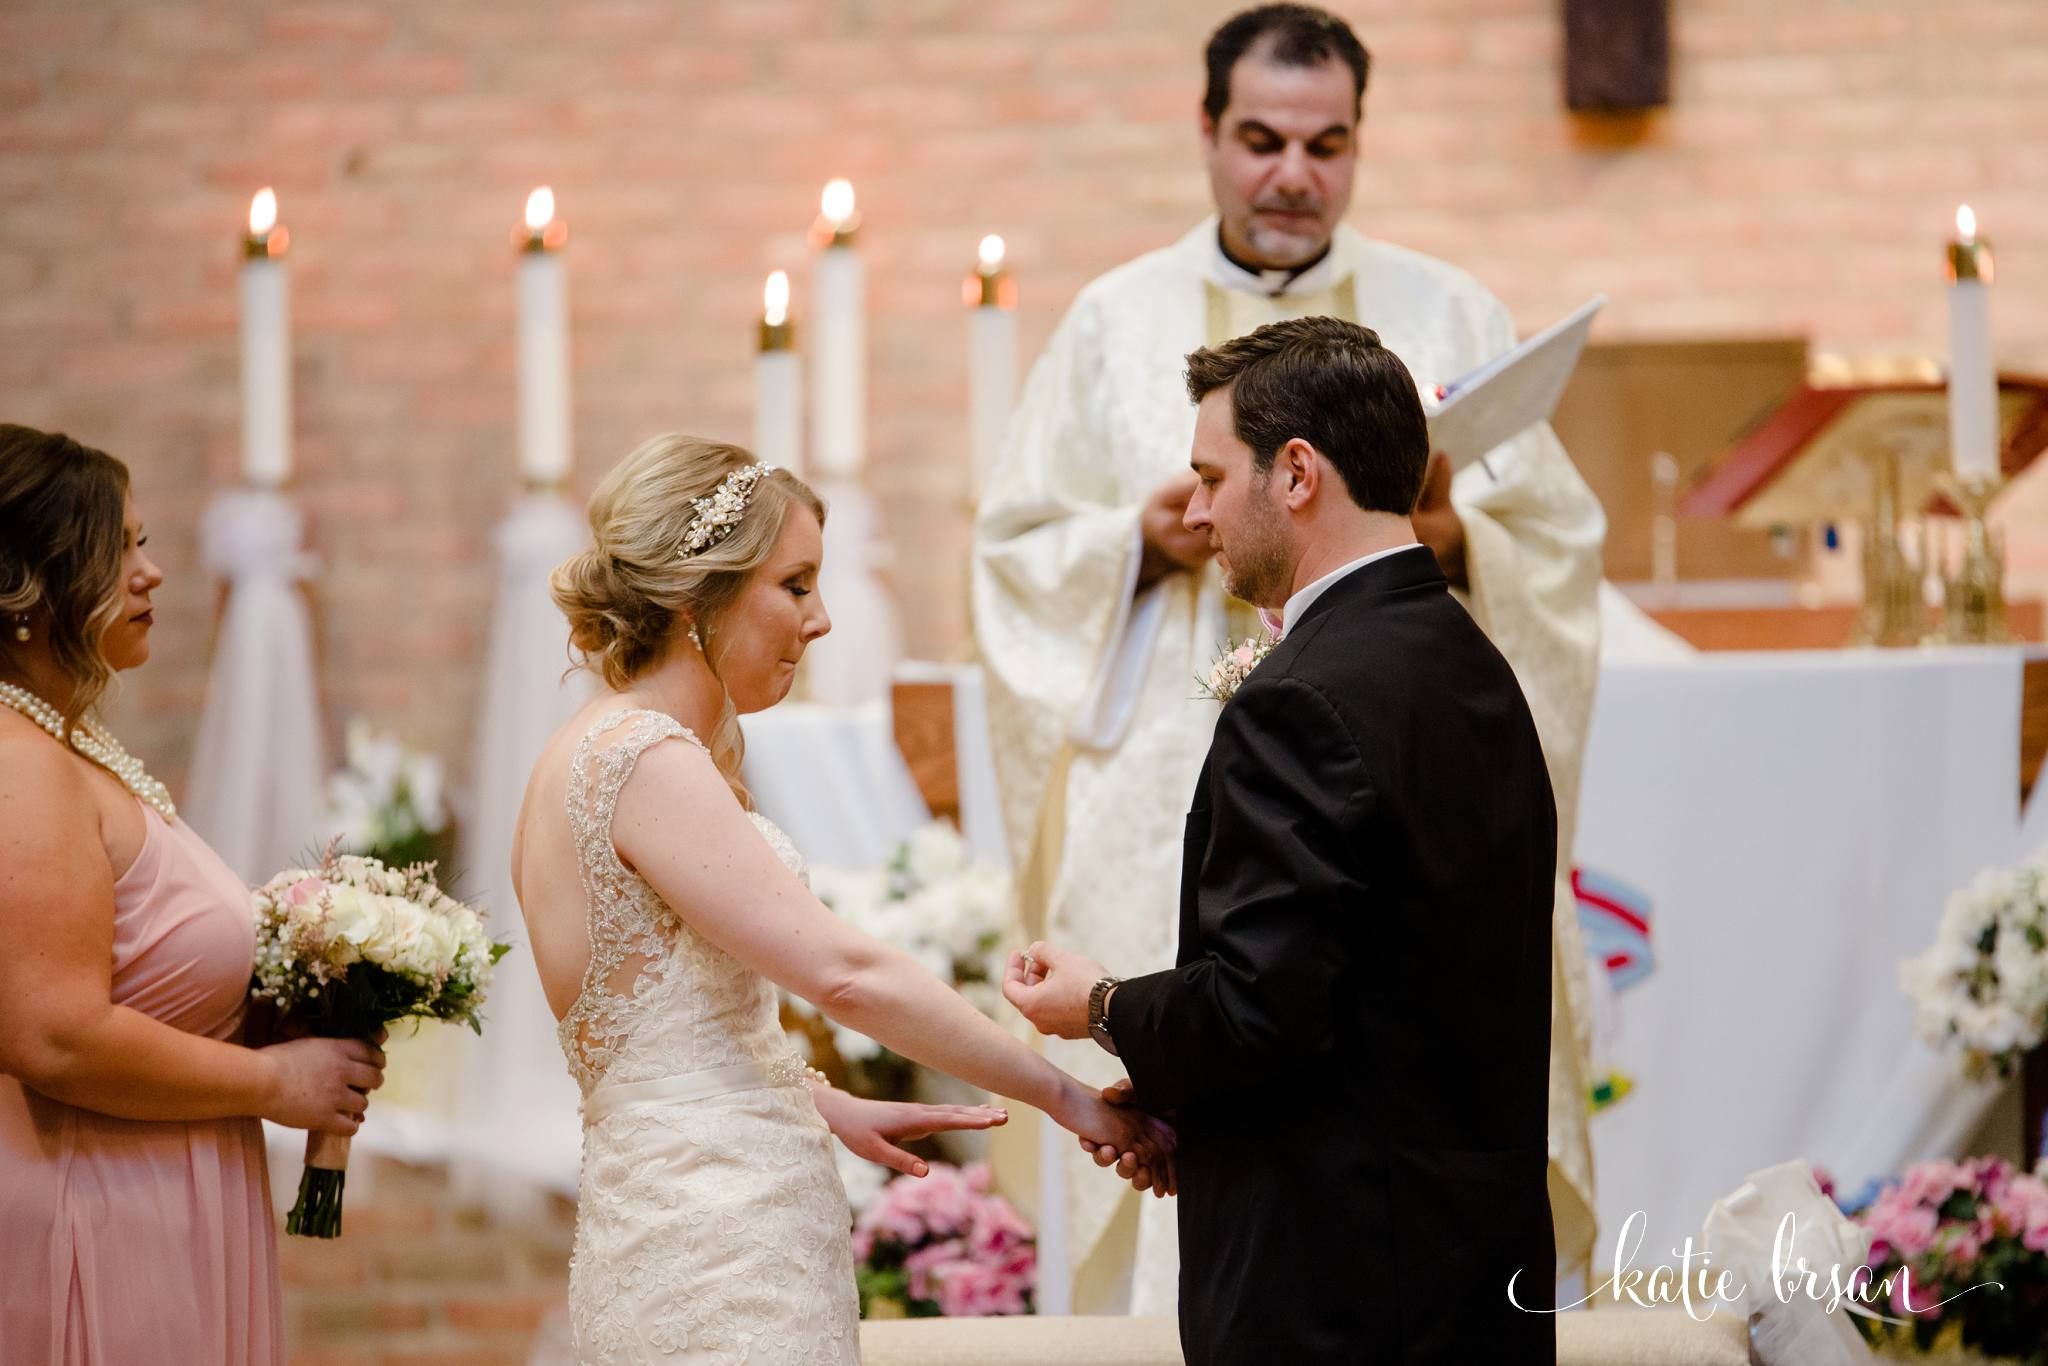 Mokena_Lemont_Wedding_Ruffled_Feathers_Wedding_1358.jpg